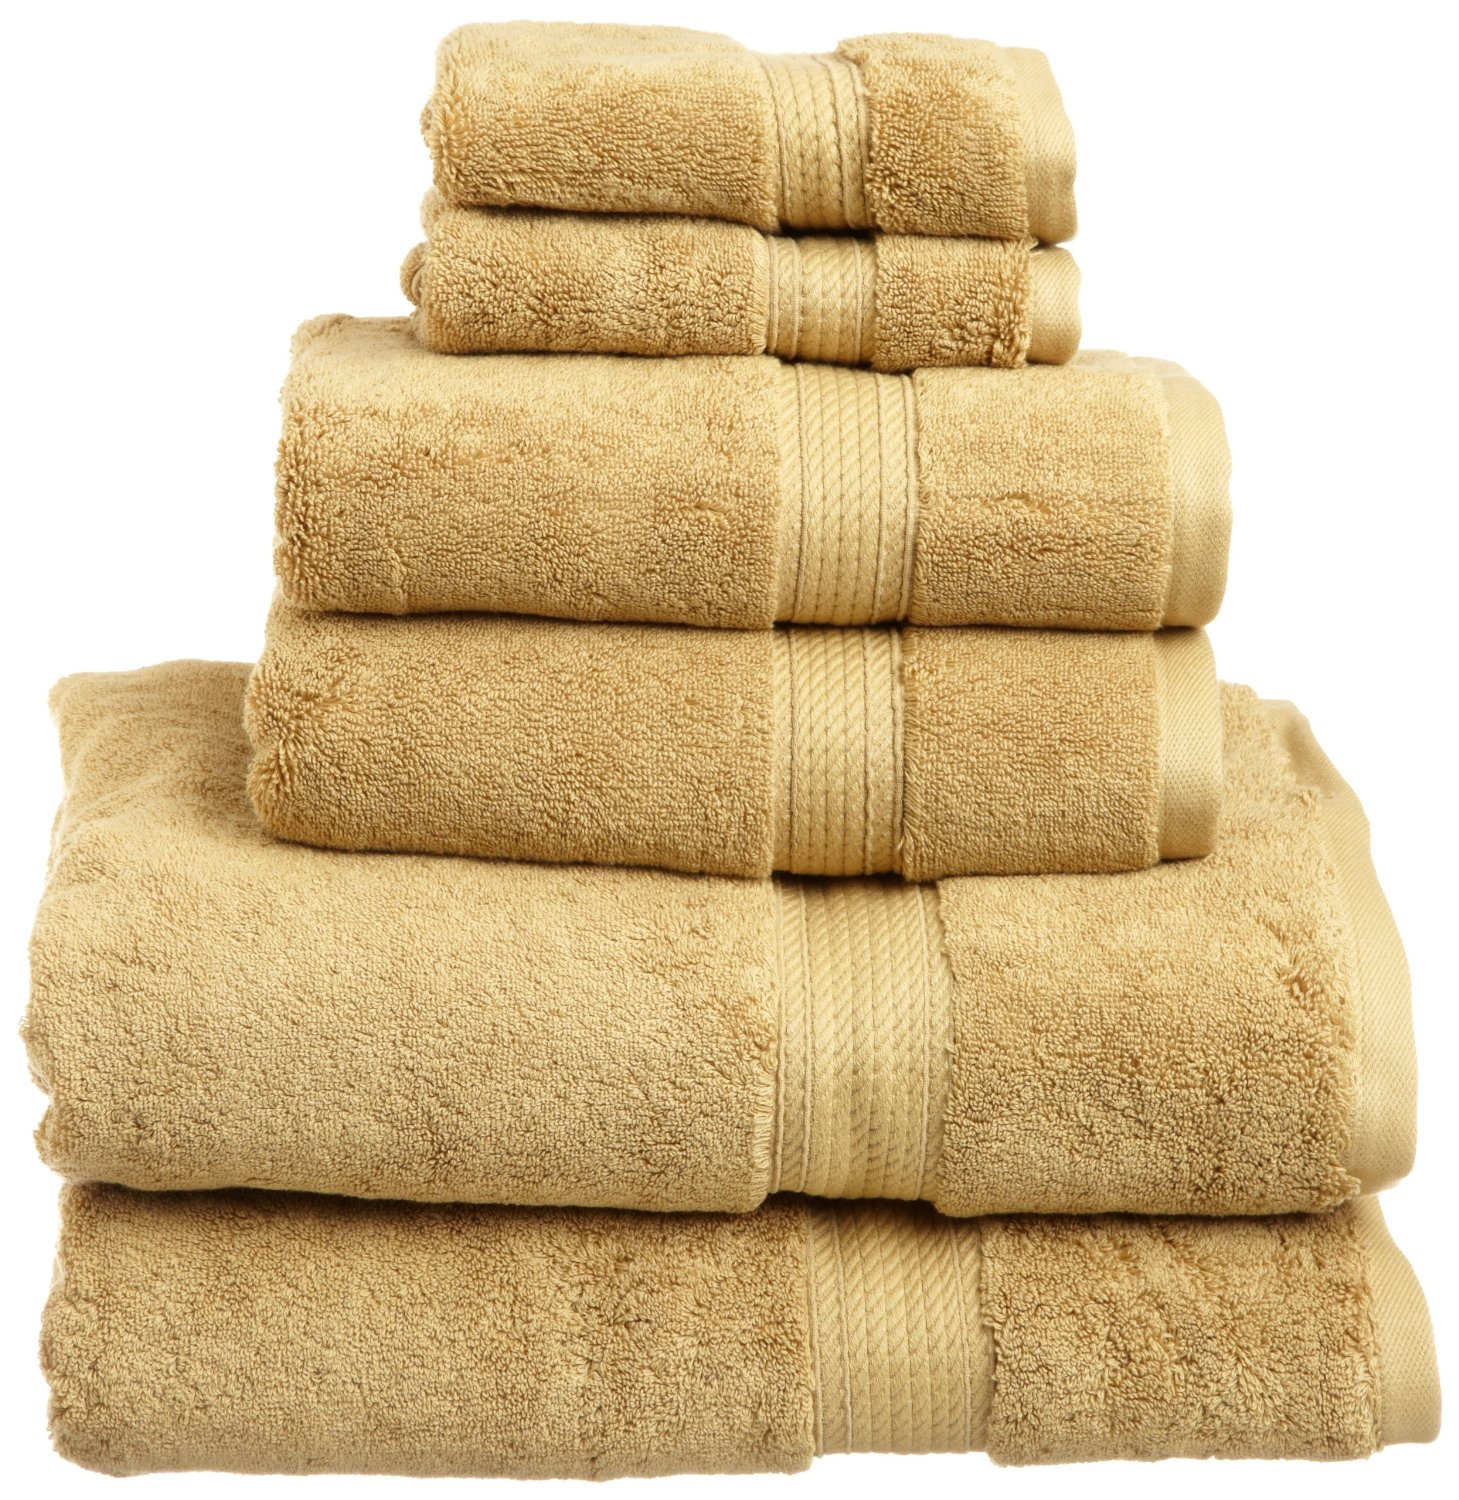 Gold Bath Towels Egyptian Cotton